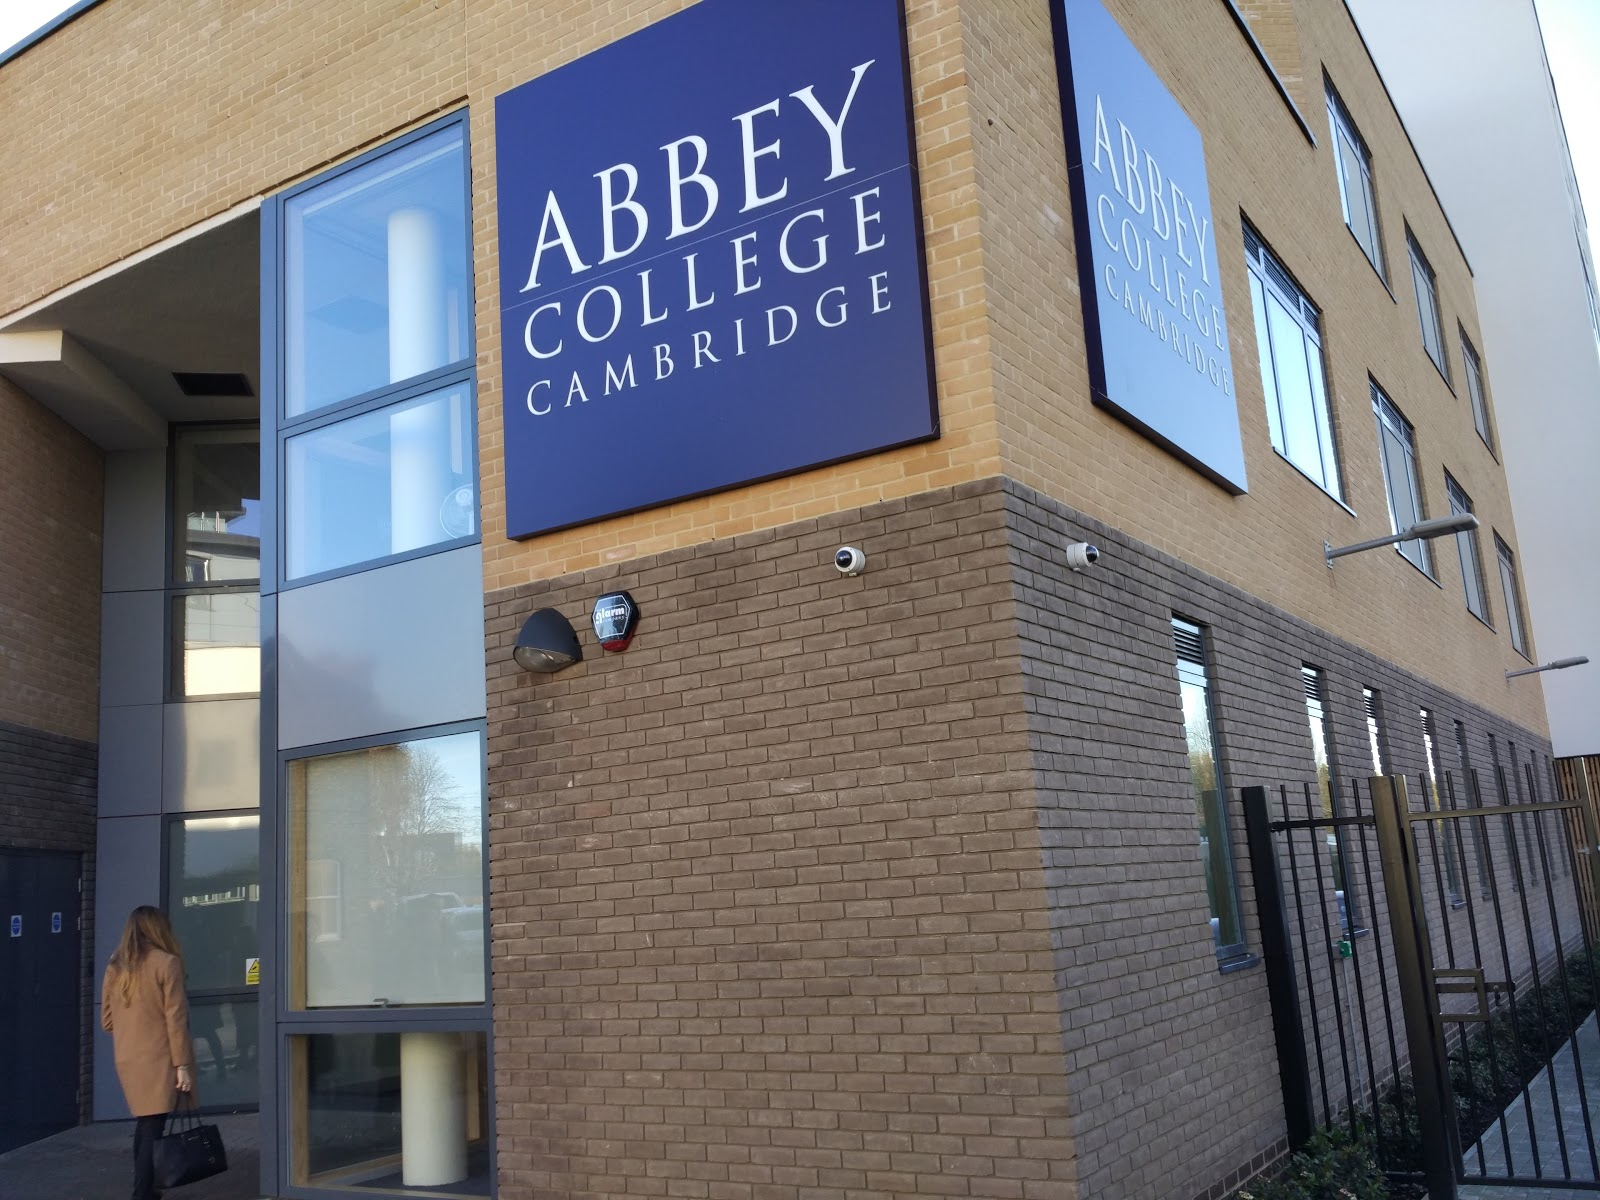 Abbey College Cambridge